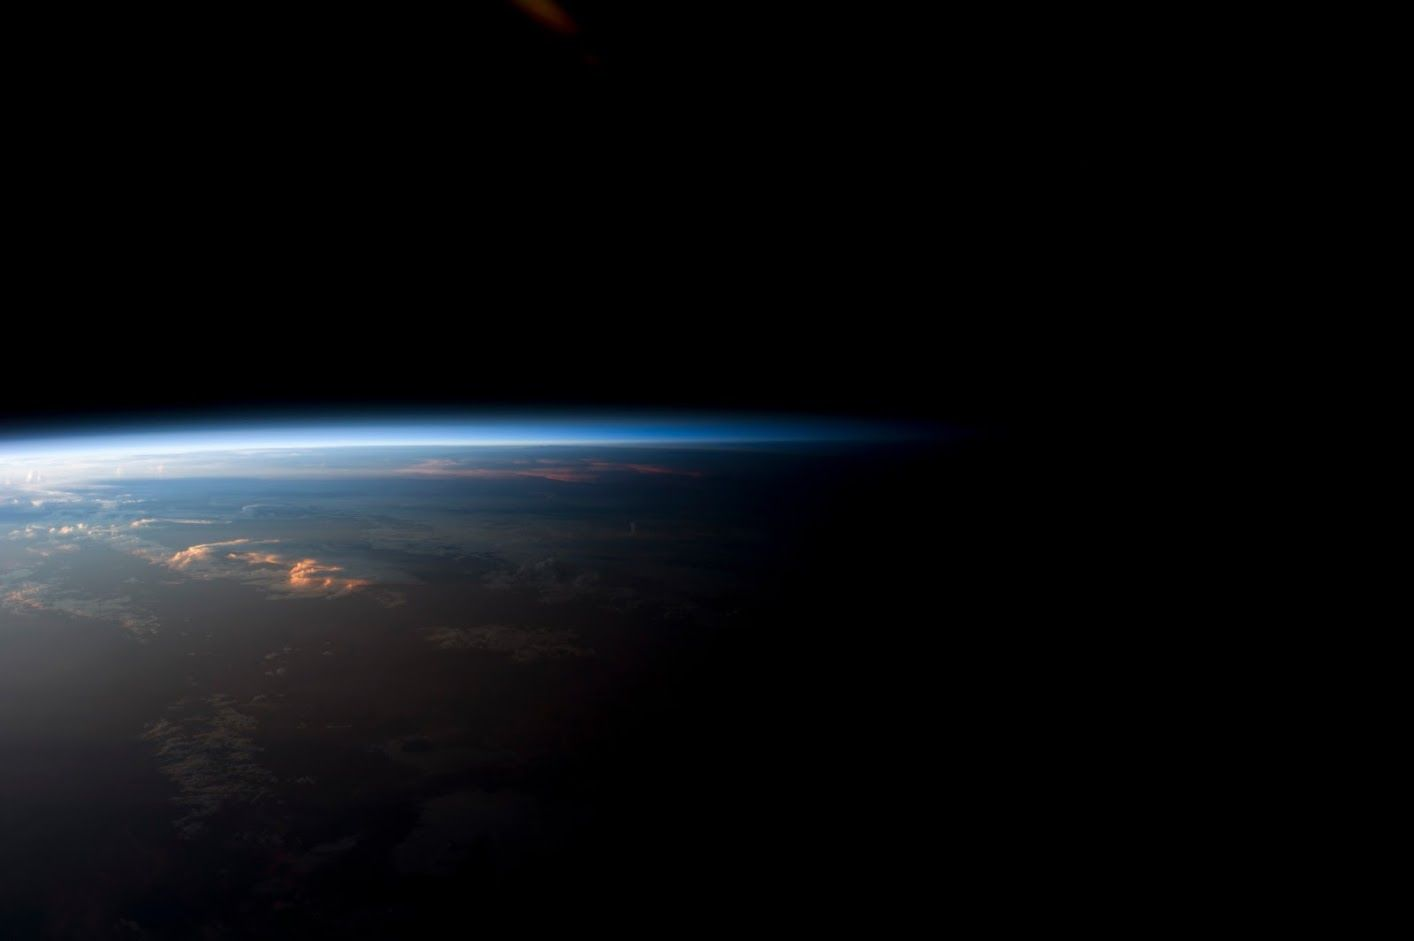 Sunrise Over Bolivia Photographed From The International Space